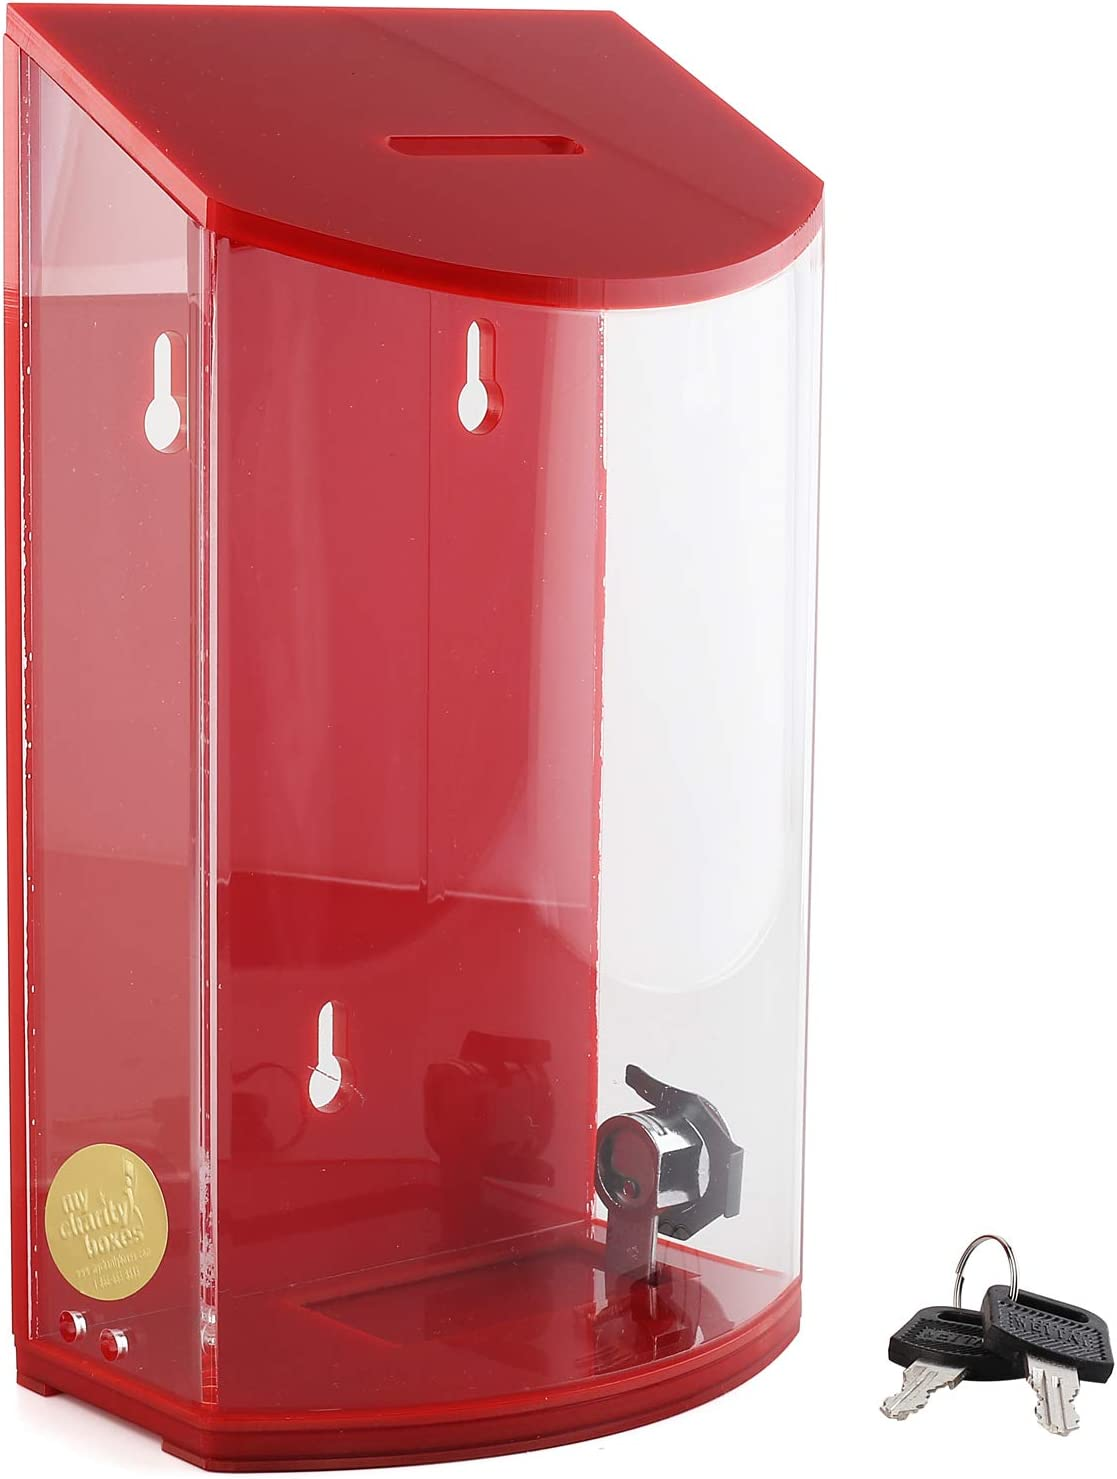 My Charity Boxes - Rounded Acrylic Box - Charity Box - Donation Box - Collection Box - Tip Container - Kupat Tzedakah (Red)